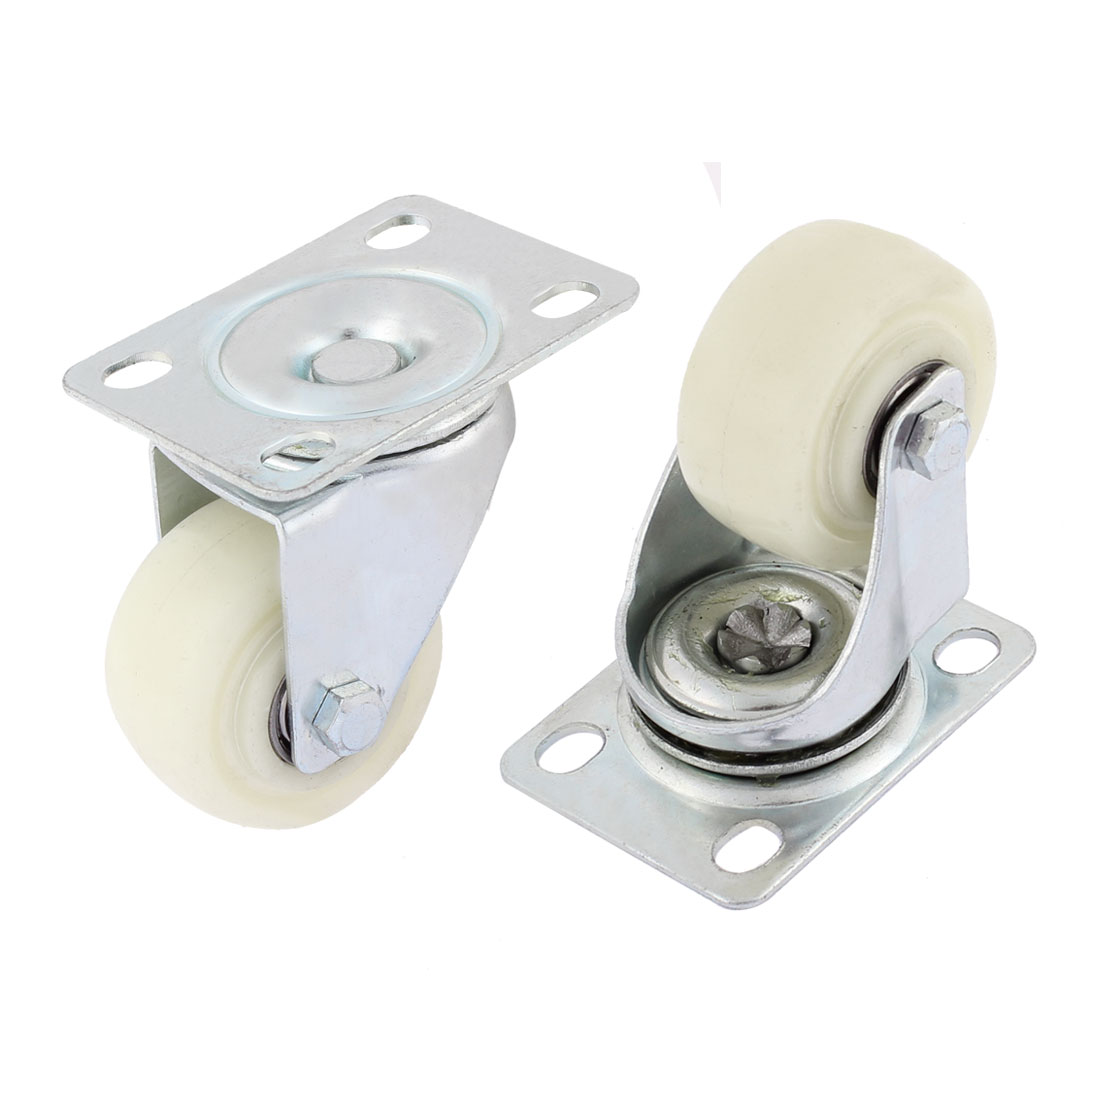 50mm Dia Plastic Base Metal Top Plate Bearing Swivel Caster Wheels 2PCS